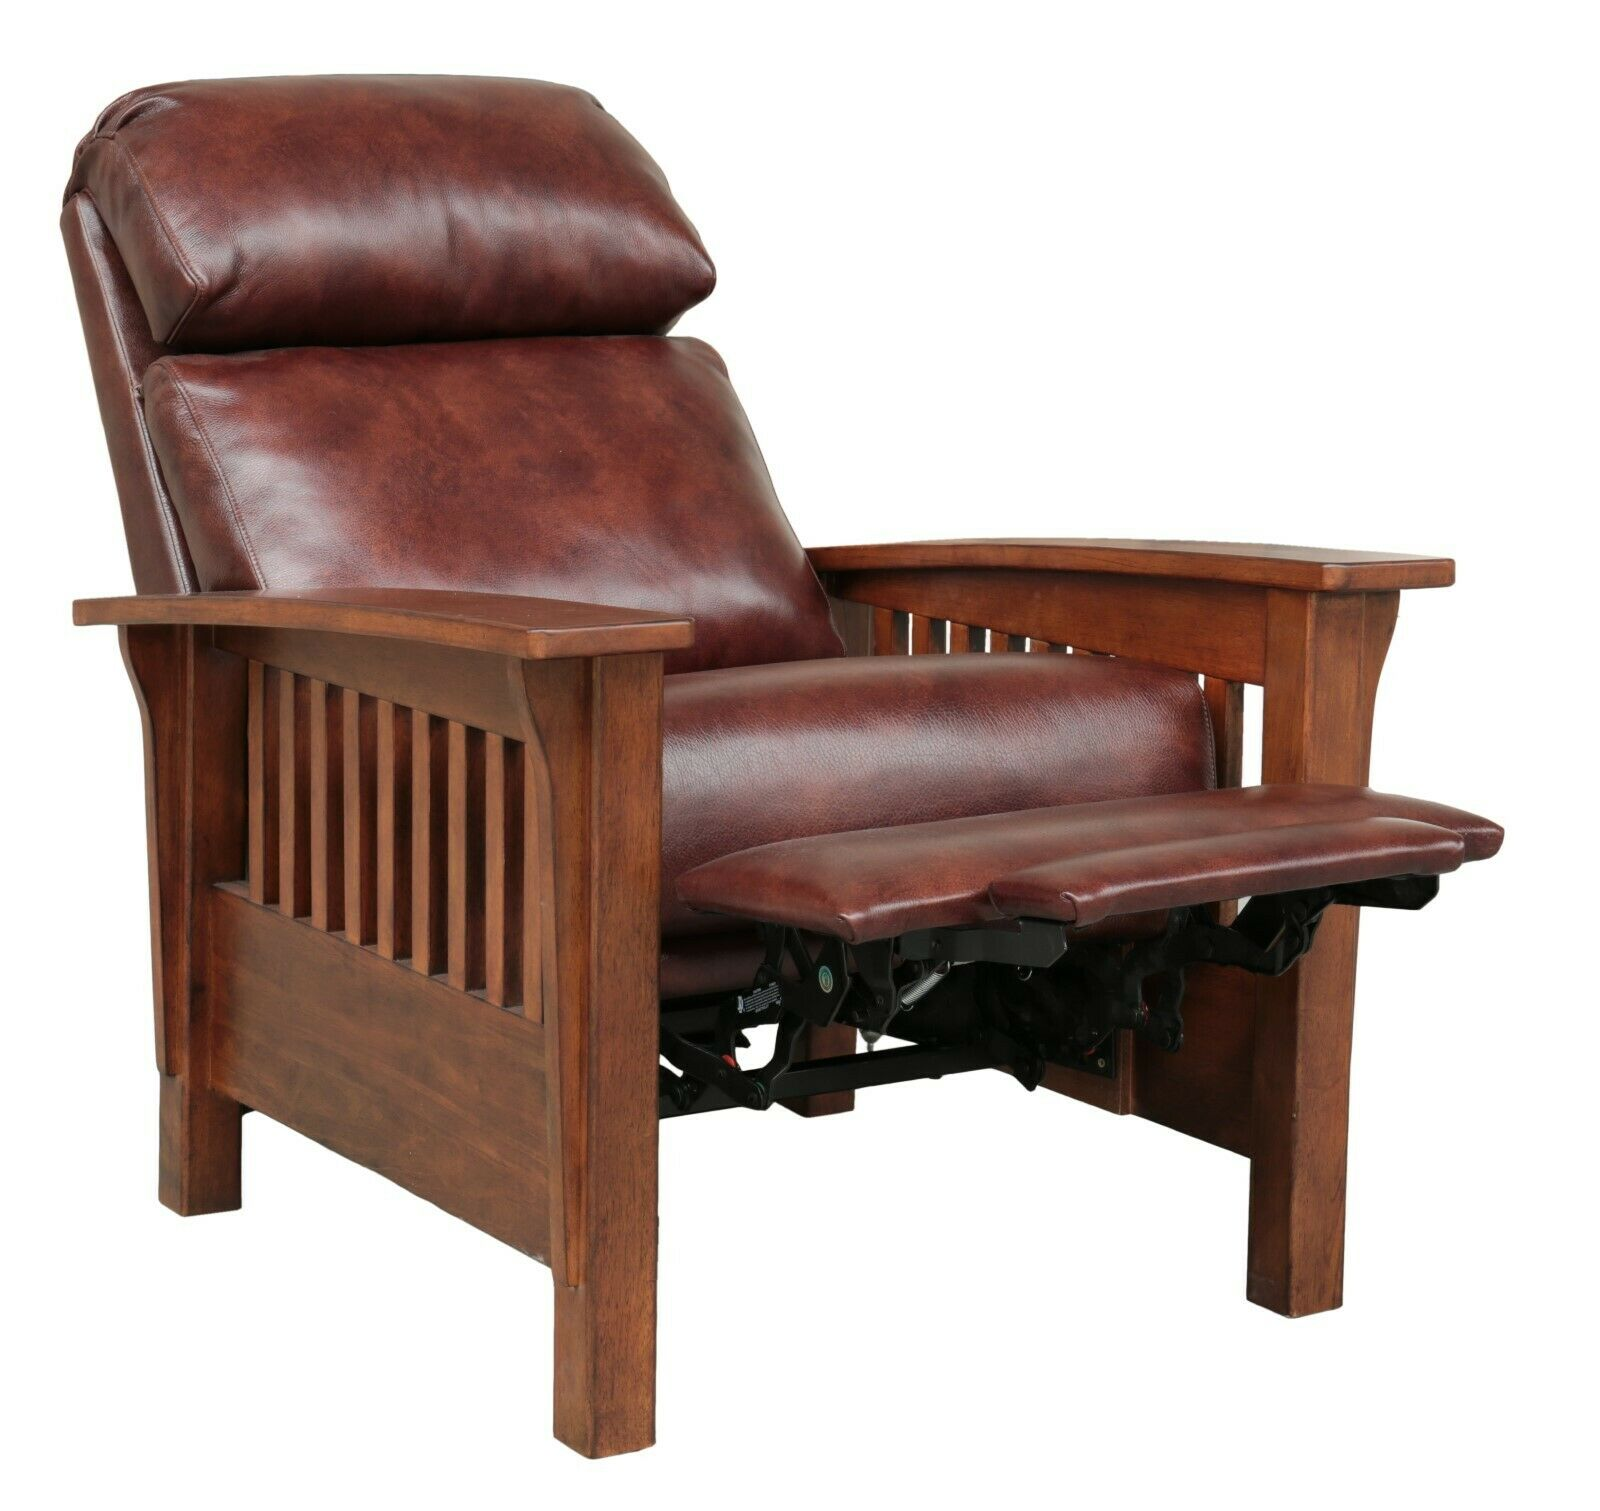 Photo BarcaLounger Mission Manual Recliner Chair Genuine Leather Craftsman Solid Wood